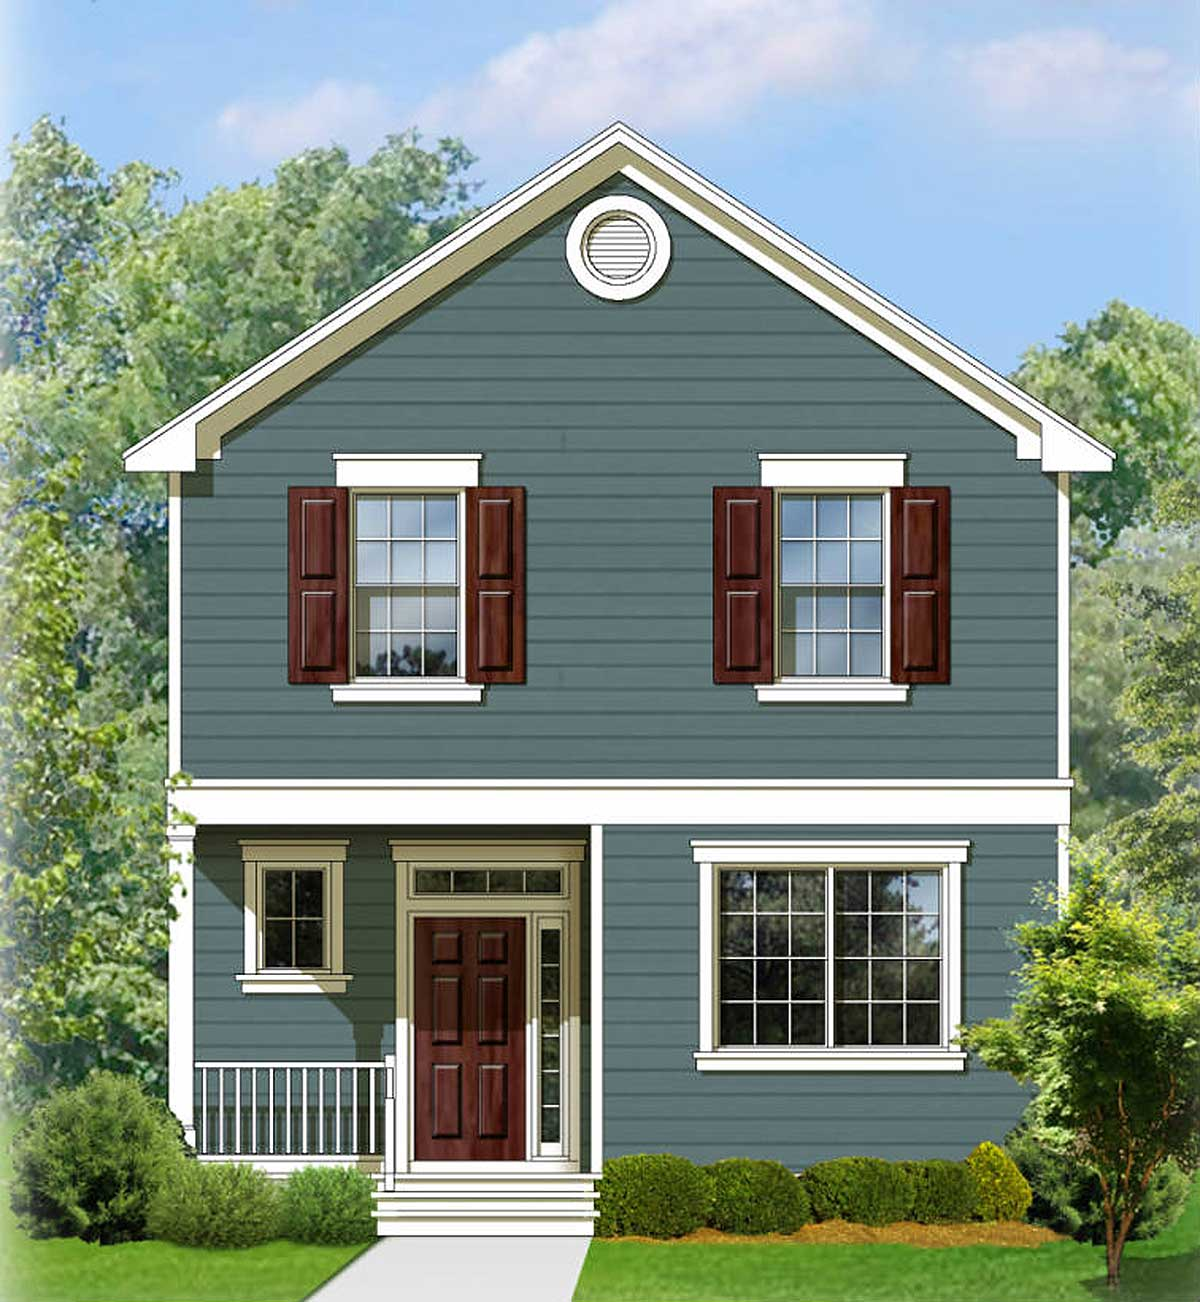 Two story traditional house plan 82083ka architectural for New american style house plans